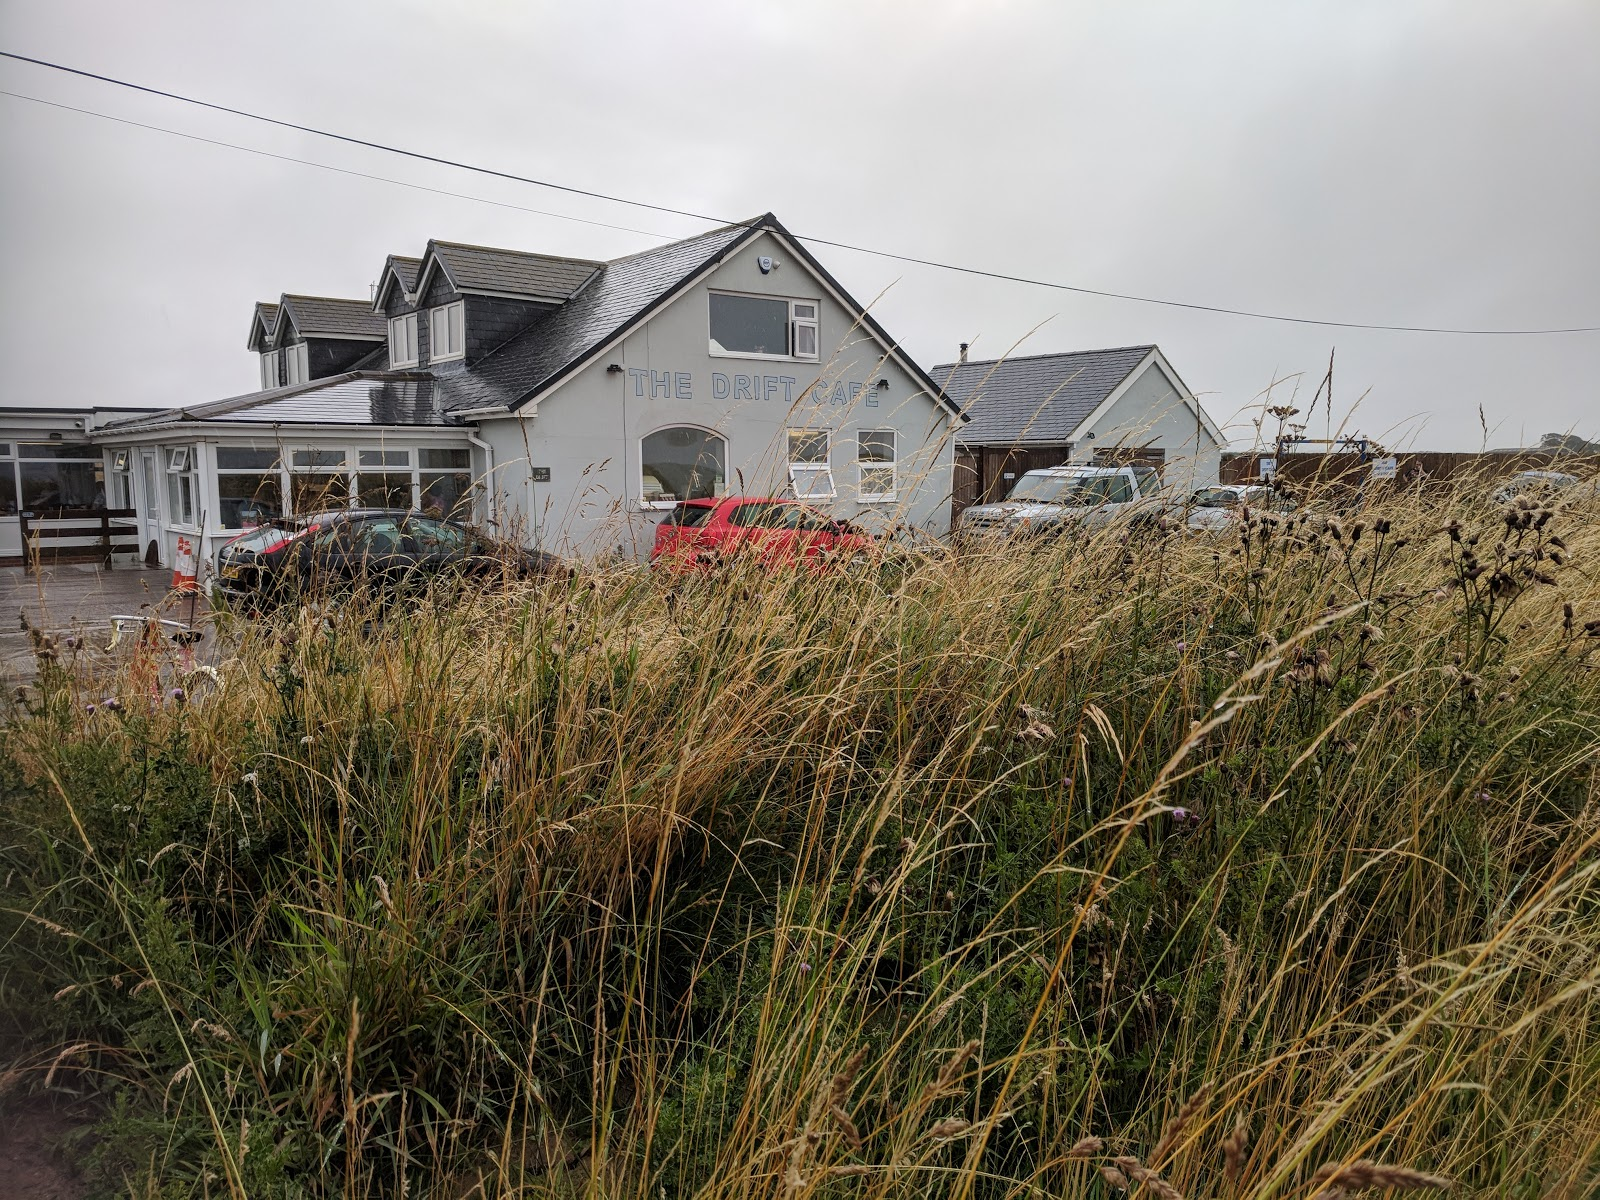 Coastal Adventures in Northumberland with Parkdean Resorts - The Drift Cafe Cresswell